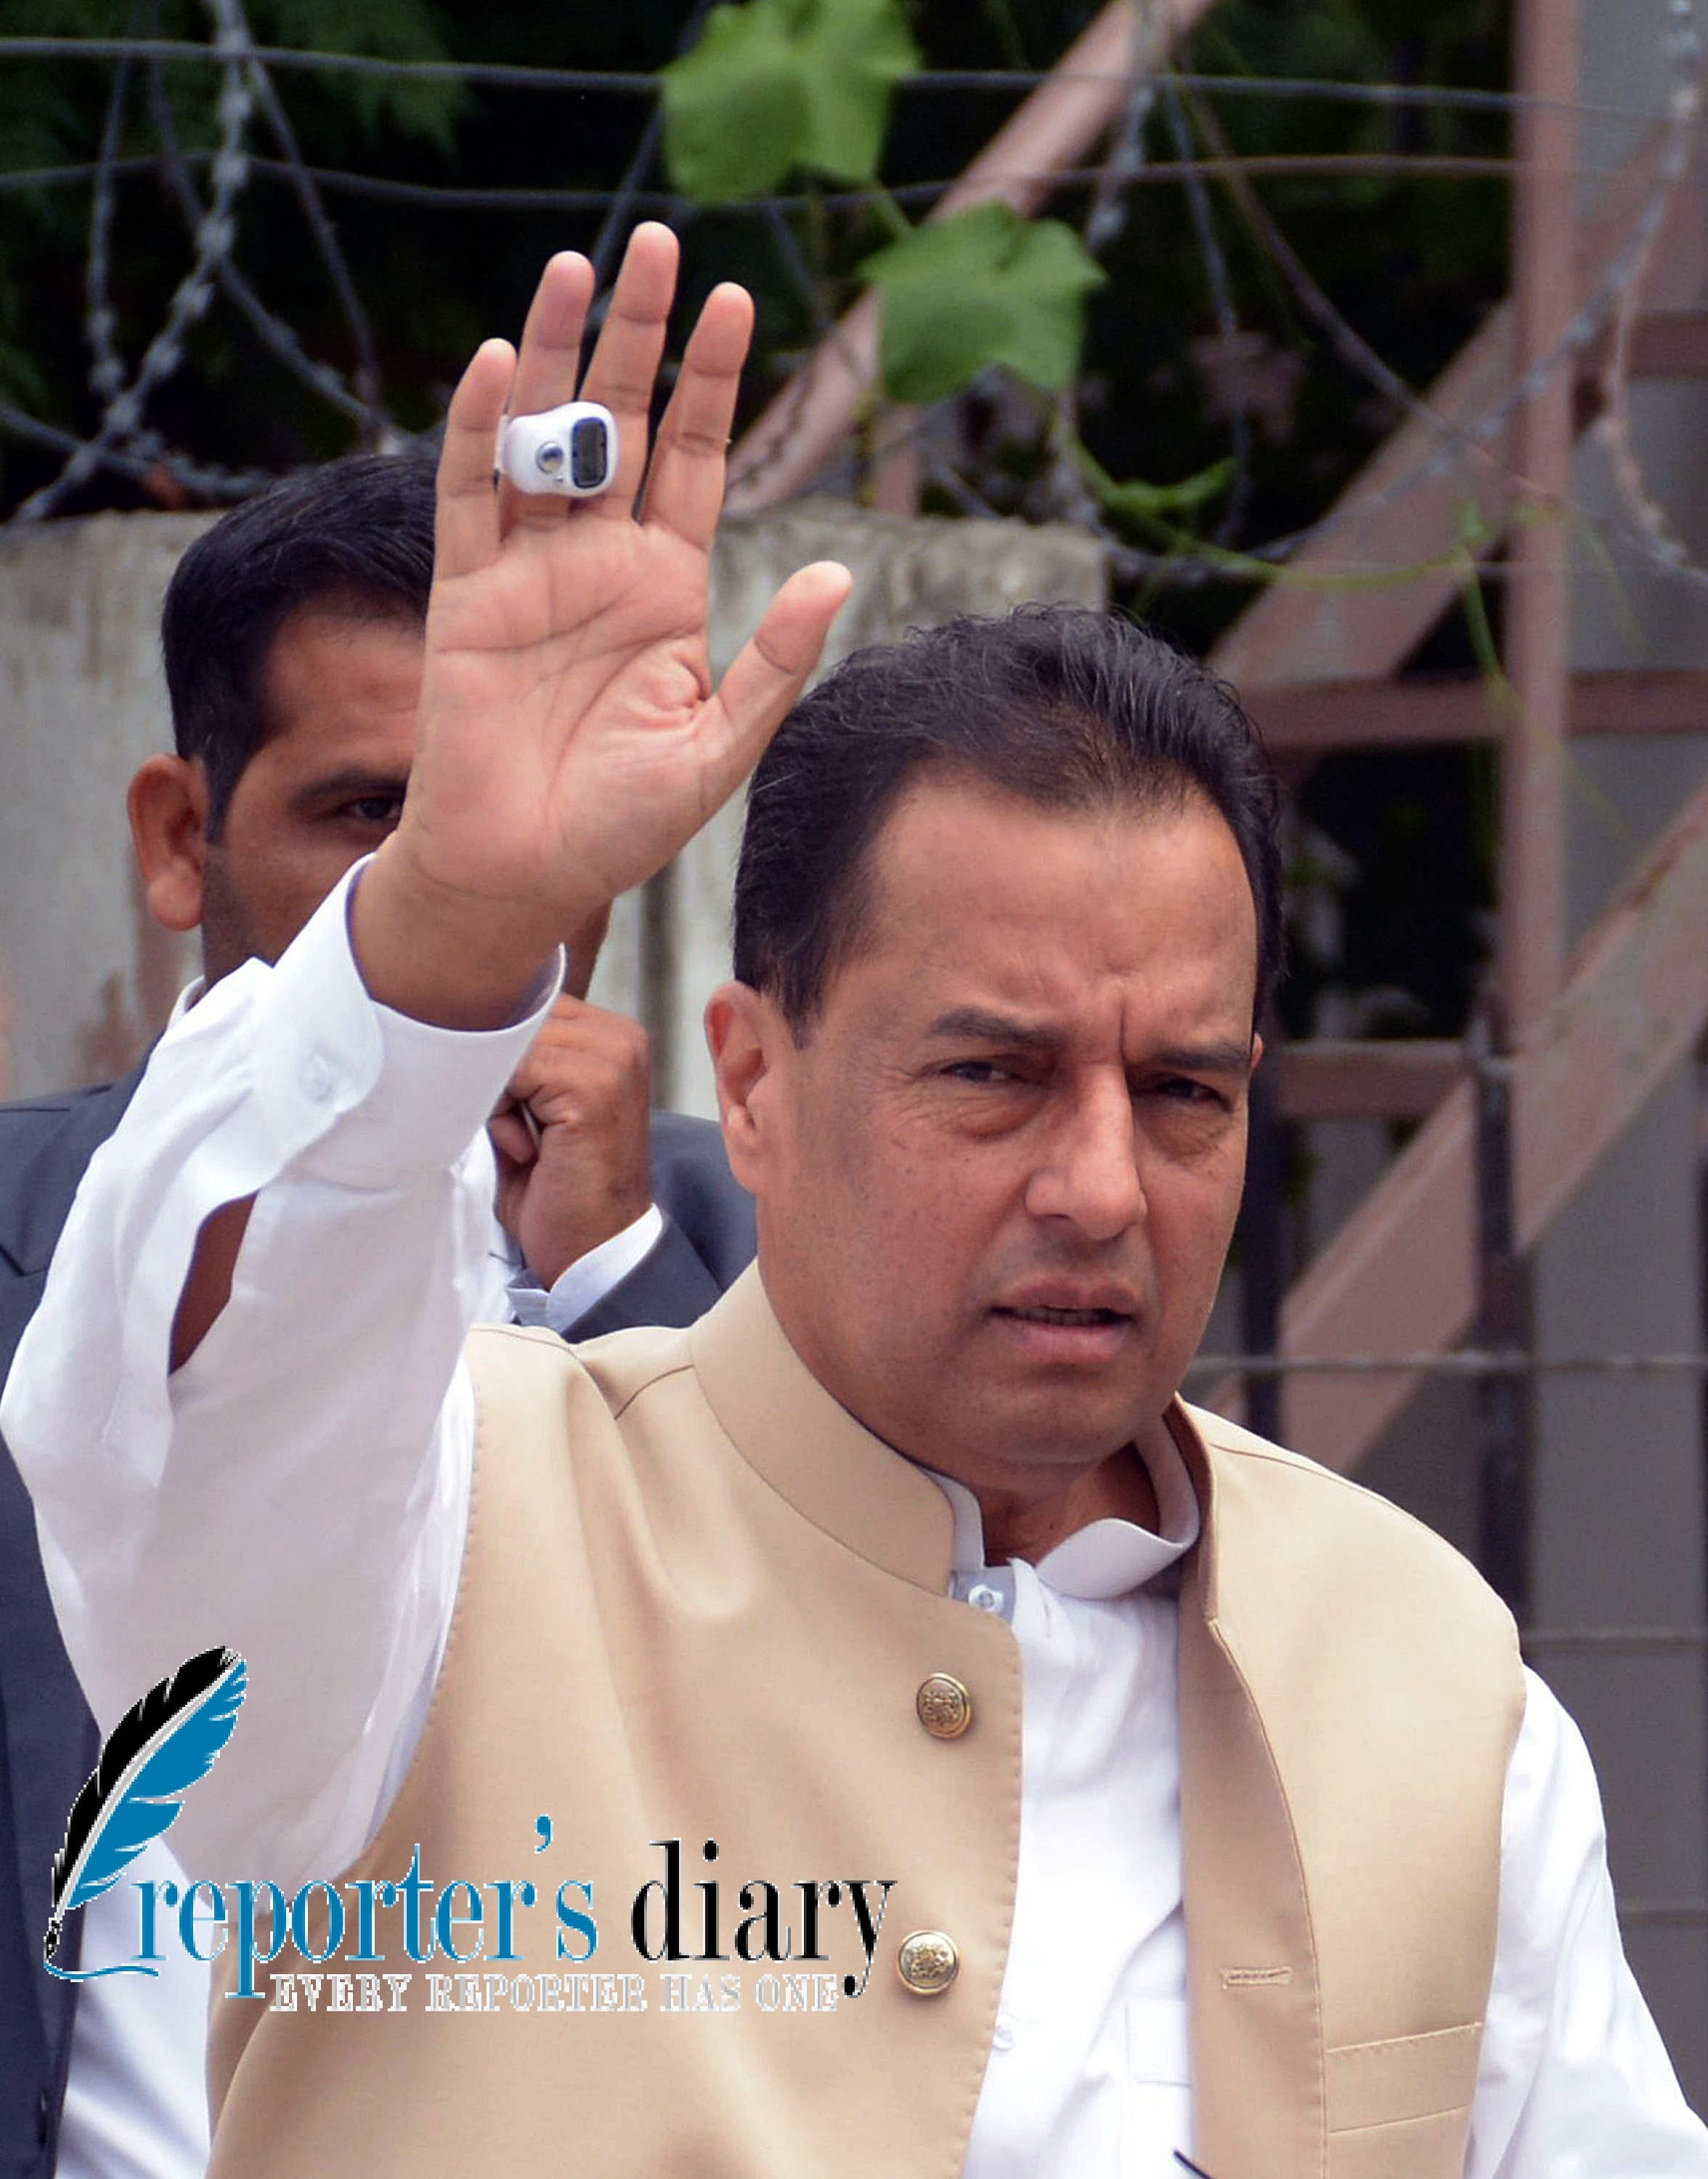 Cap ® Safdar appears before the Panama JIT in Islamabad on June 24, 2017. Photo by Mian Khursheed